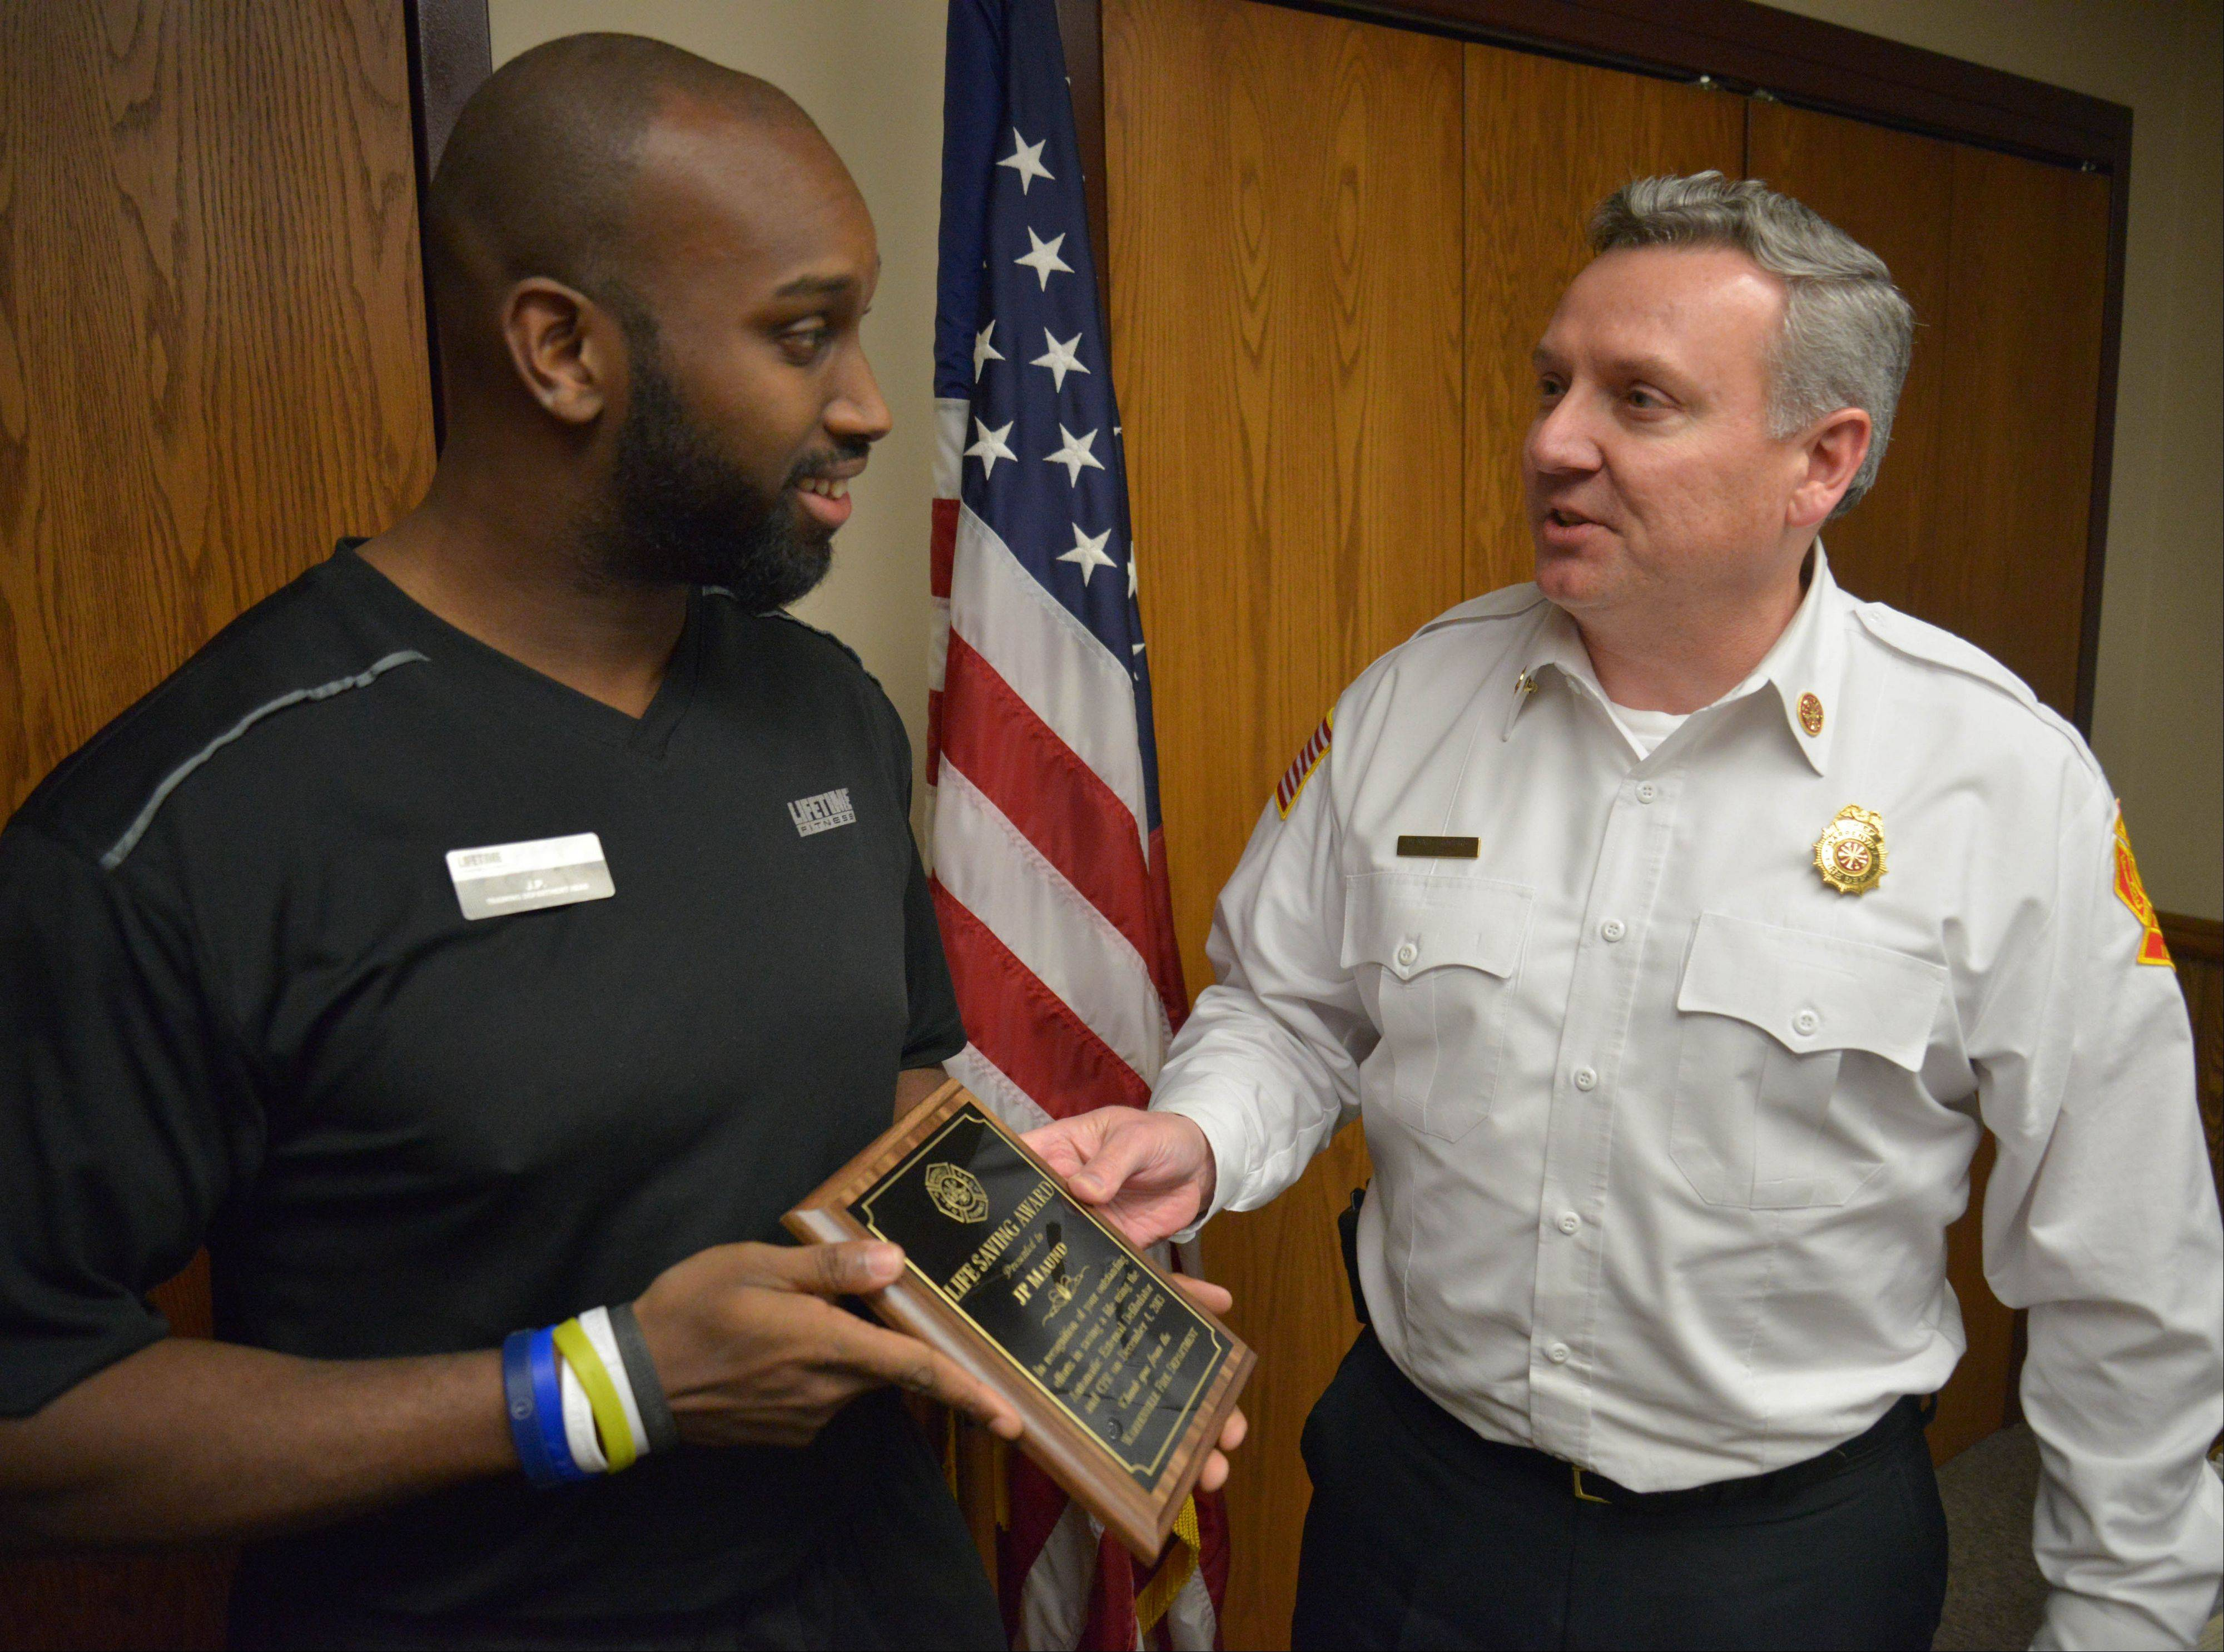 J.P. Maund, a trainer at Life Time Fitness in Warrenville, receives the Warrenville Fire Protection District's Lifesaving Award from Chief Dennis Rogers. Maund was honored Wednesday night for helping resuscitate a man who went into cardiac arrest at the gym Dec. 4.